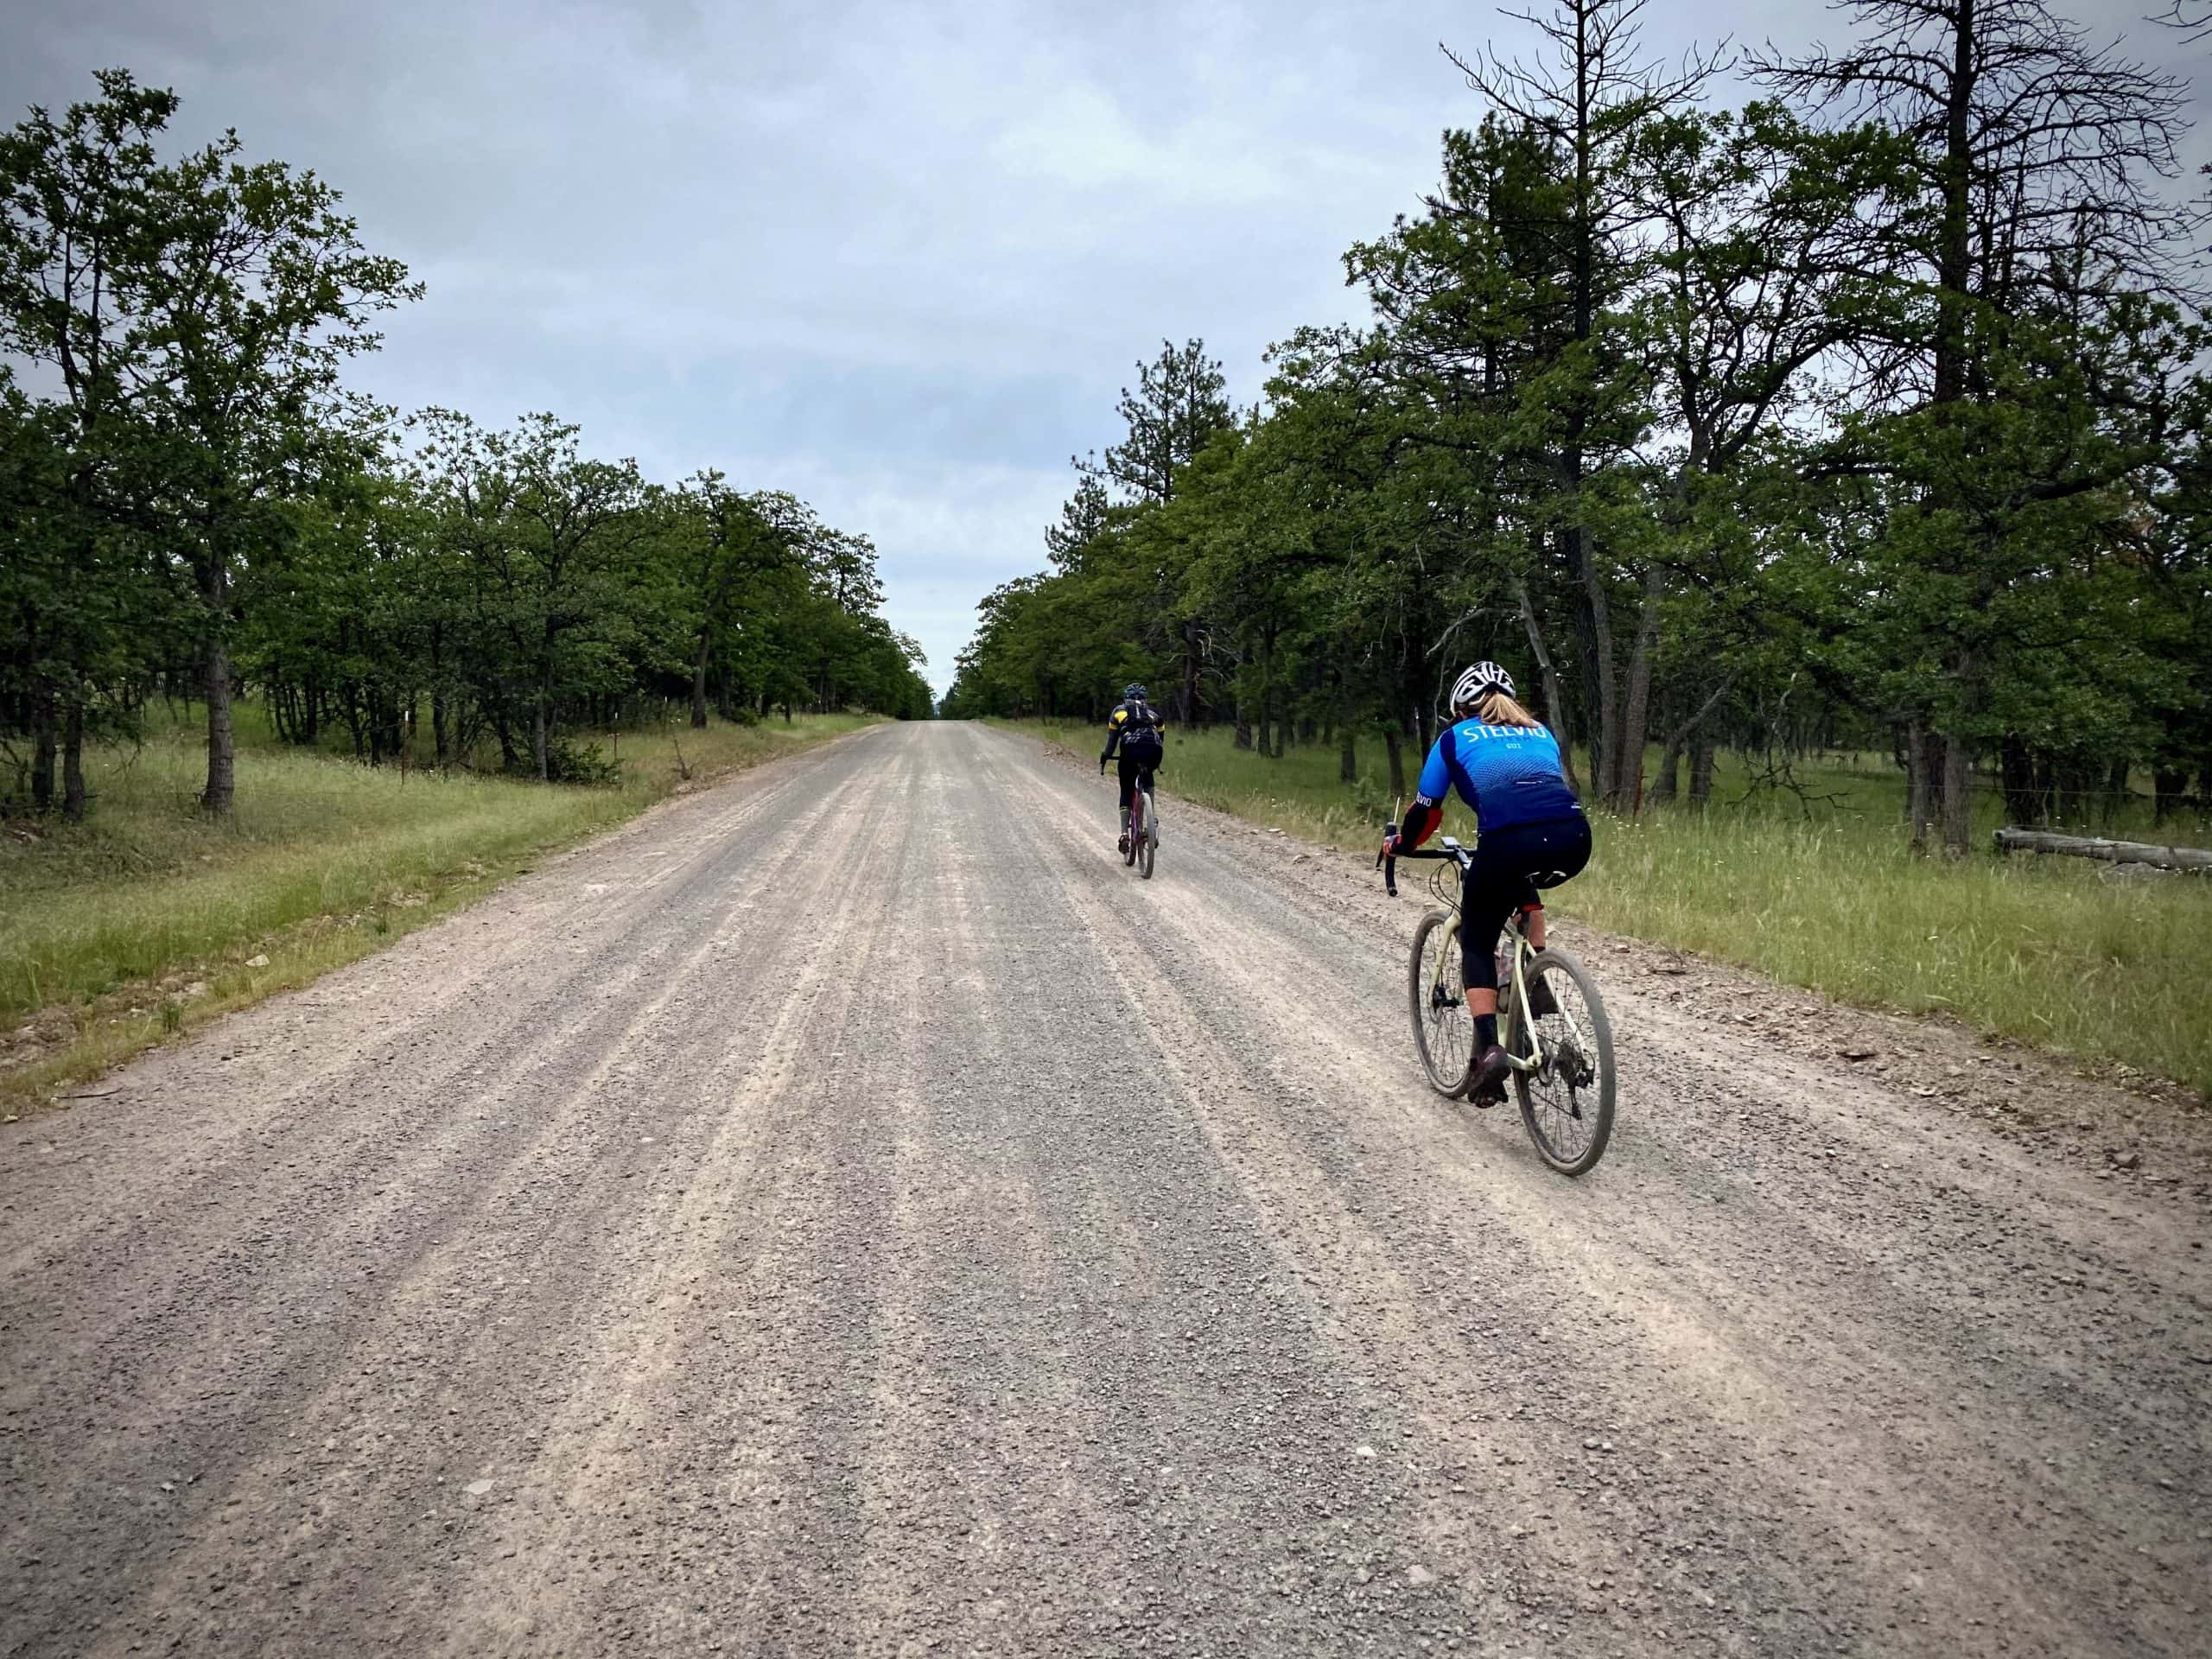 Two cyclists on gravel road near the ghost town of Friend, Oregon.